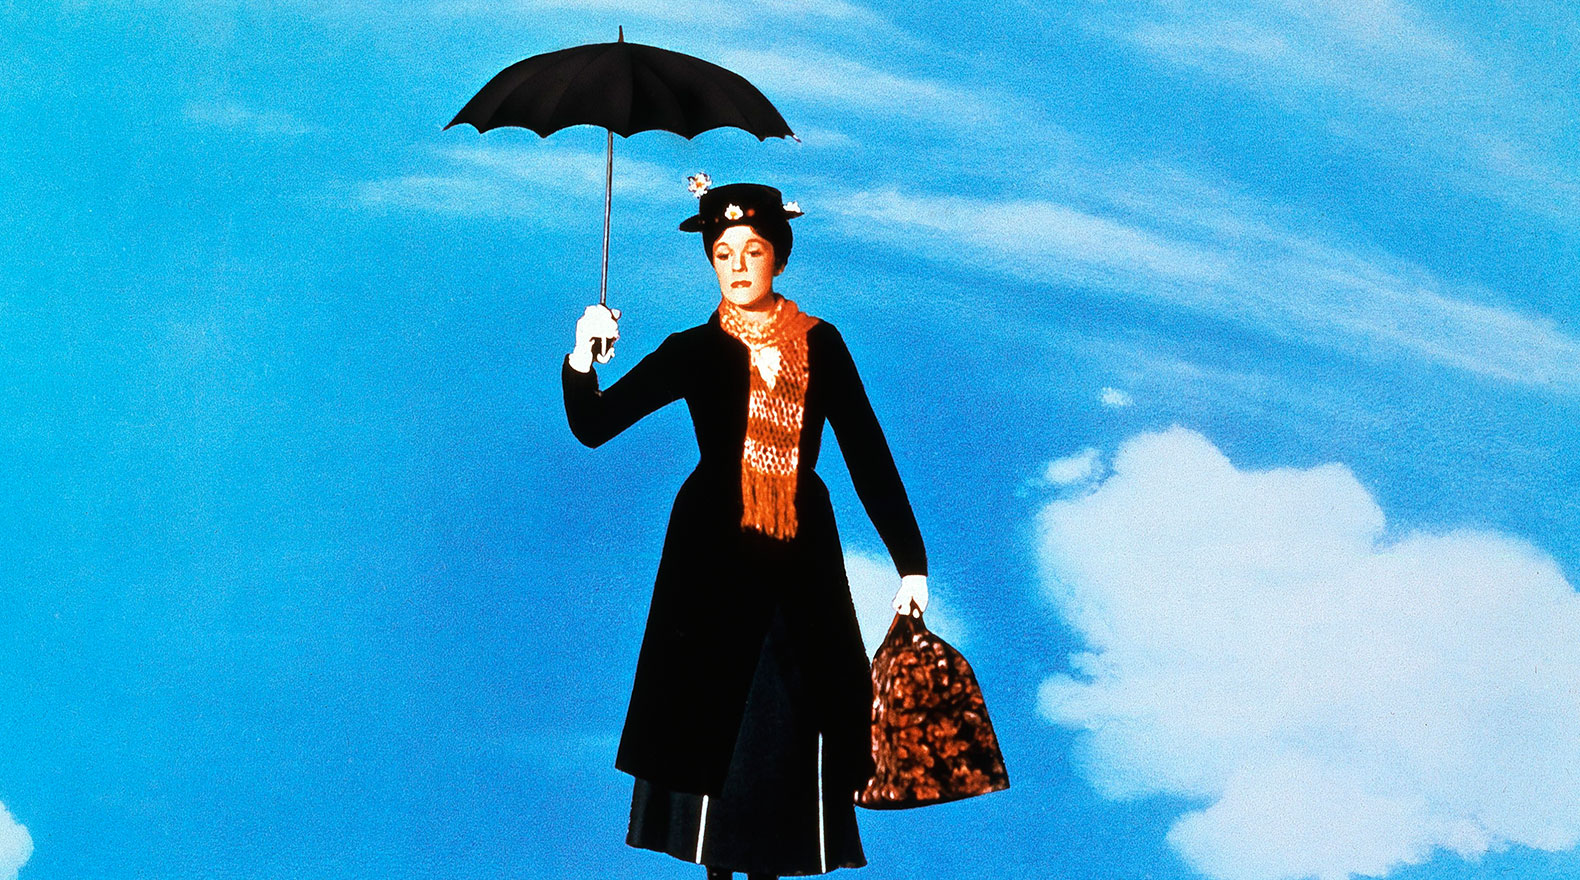 New 'Mary Poppins' movie in the works from Rob Marshall